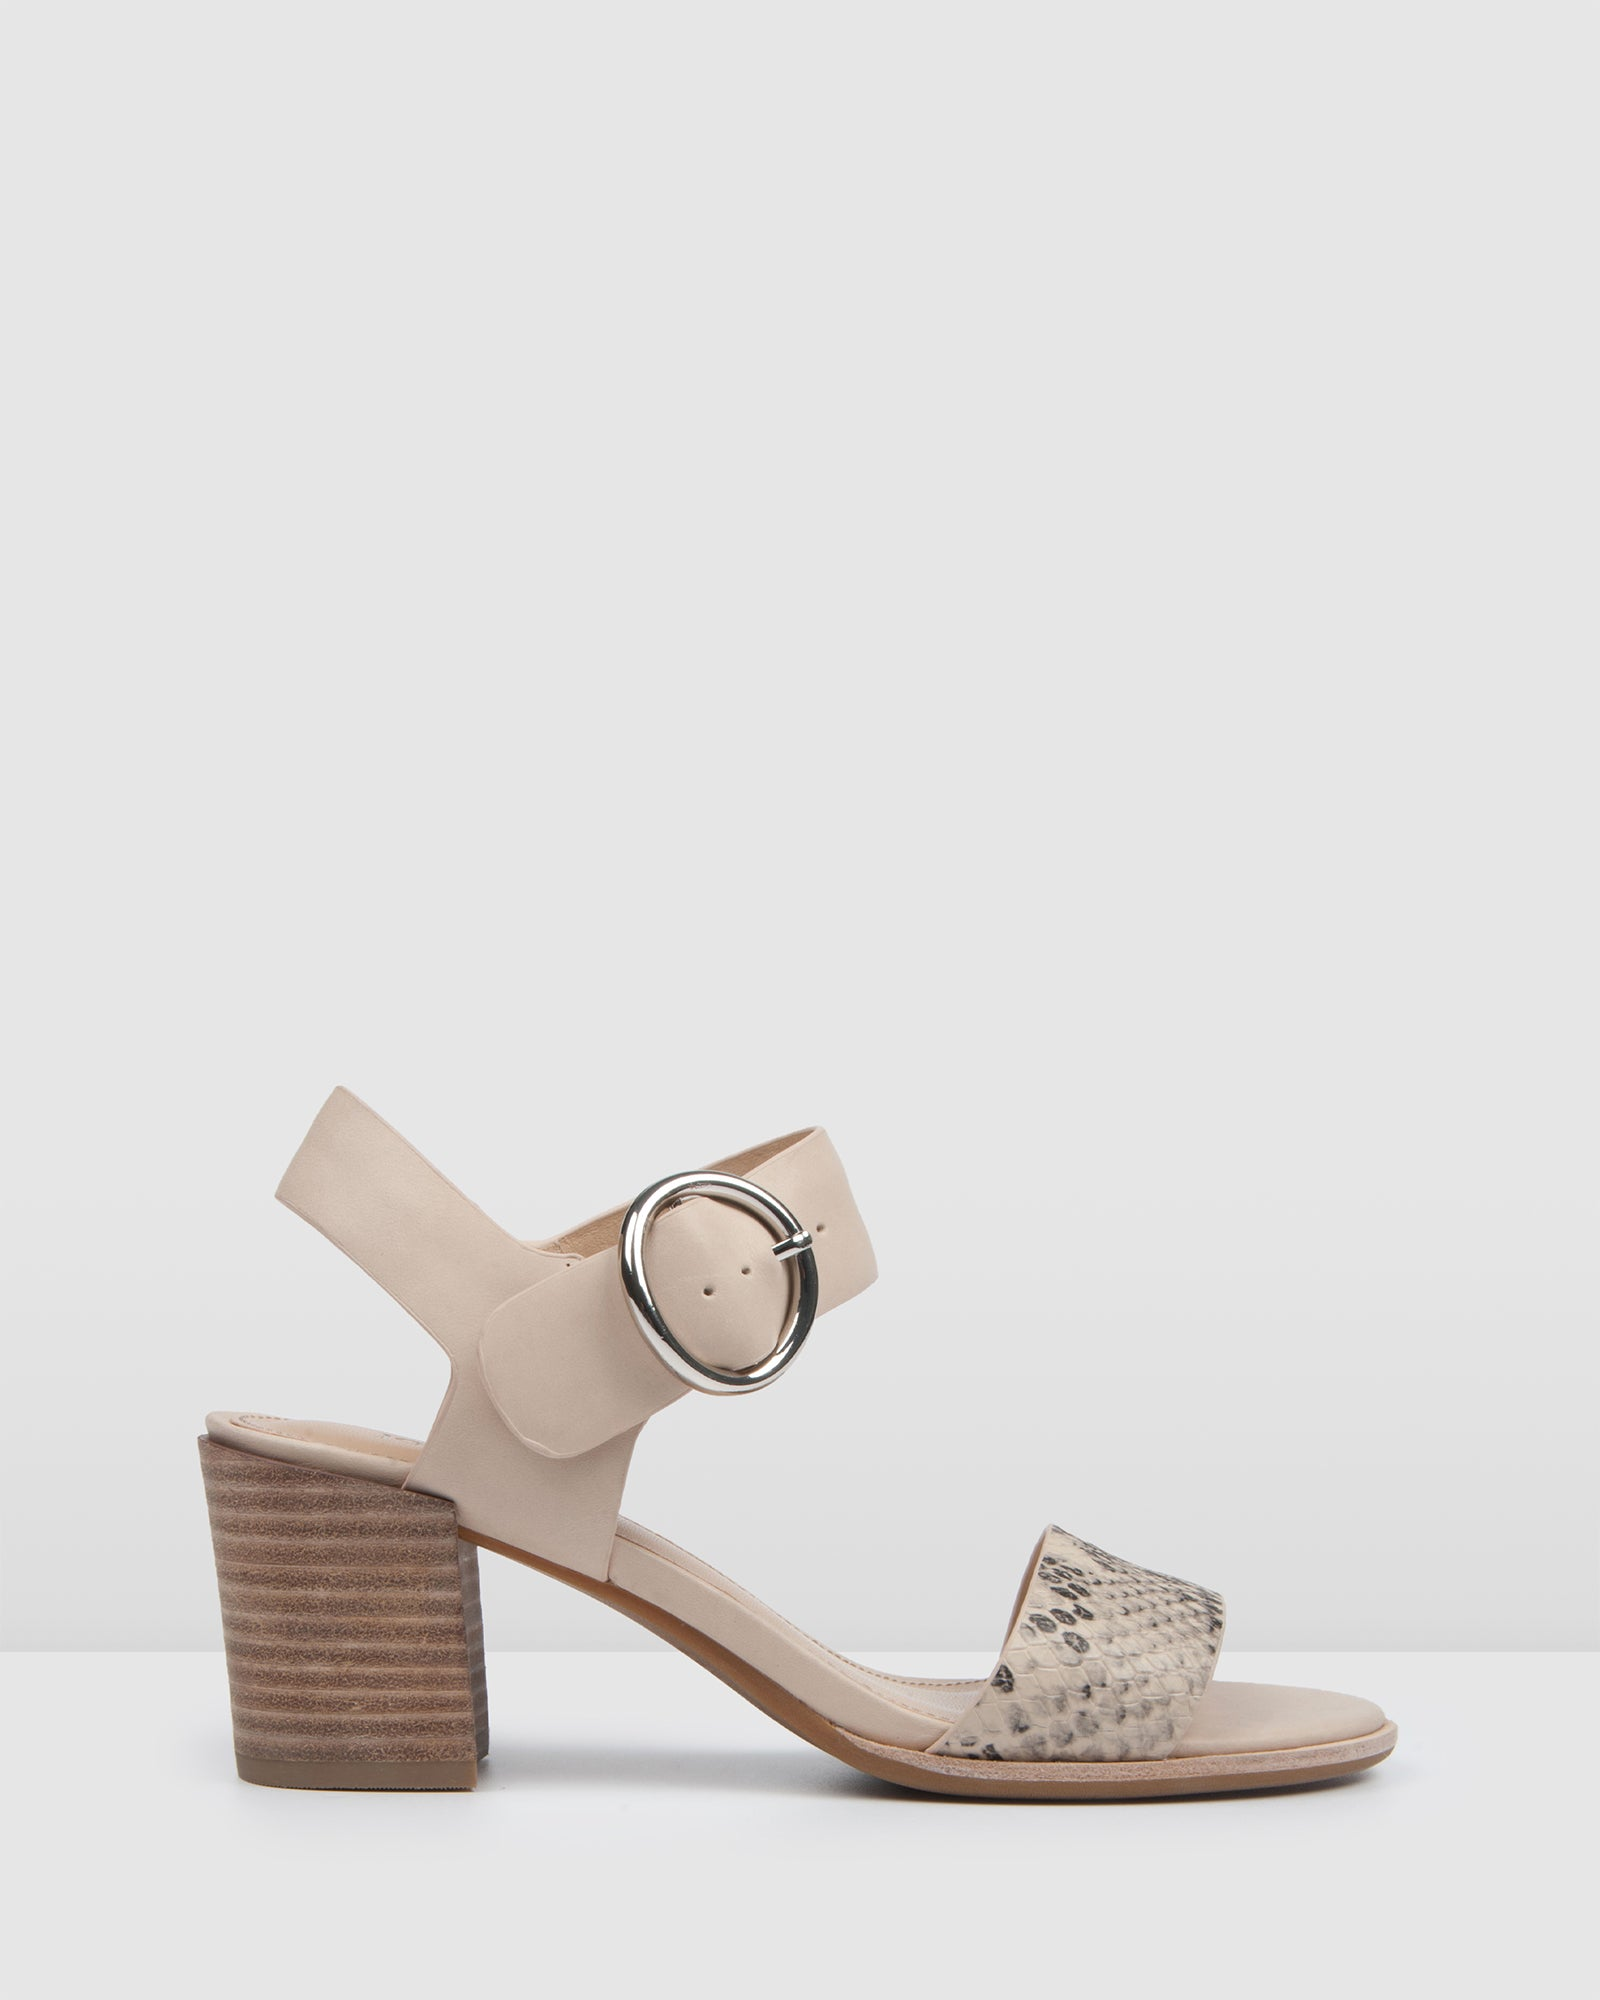 Details about NEW Jo Mercer Bowie Mid Heel Sandals Bone Leather